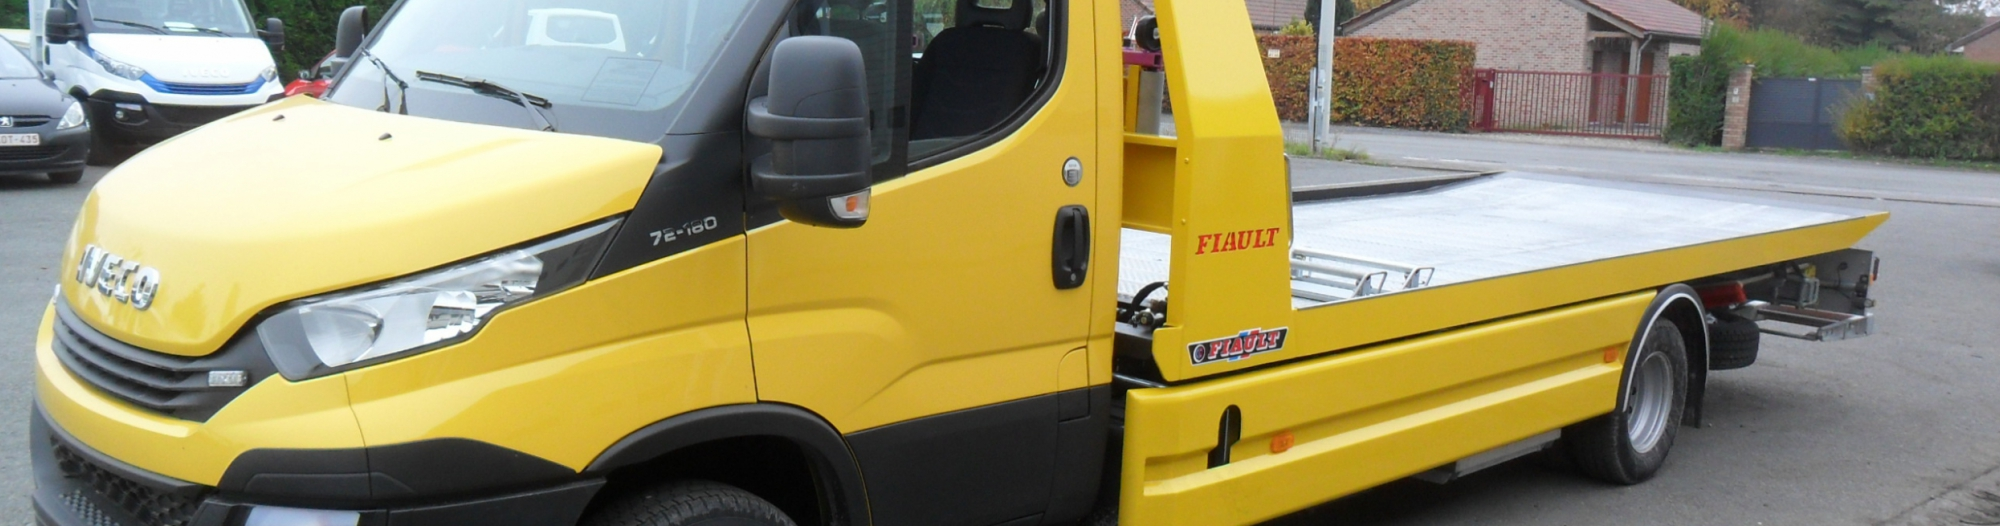 PLAT'TRANS PF30 Fiault sur IVECO Daily